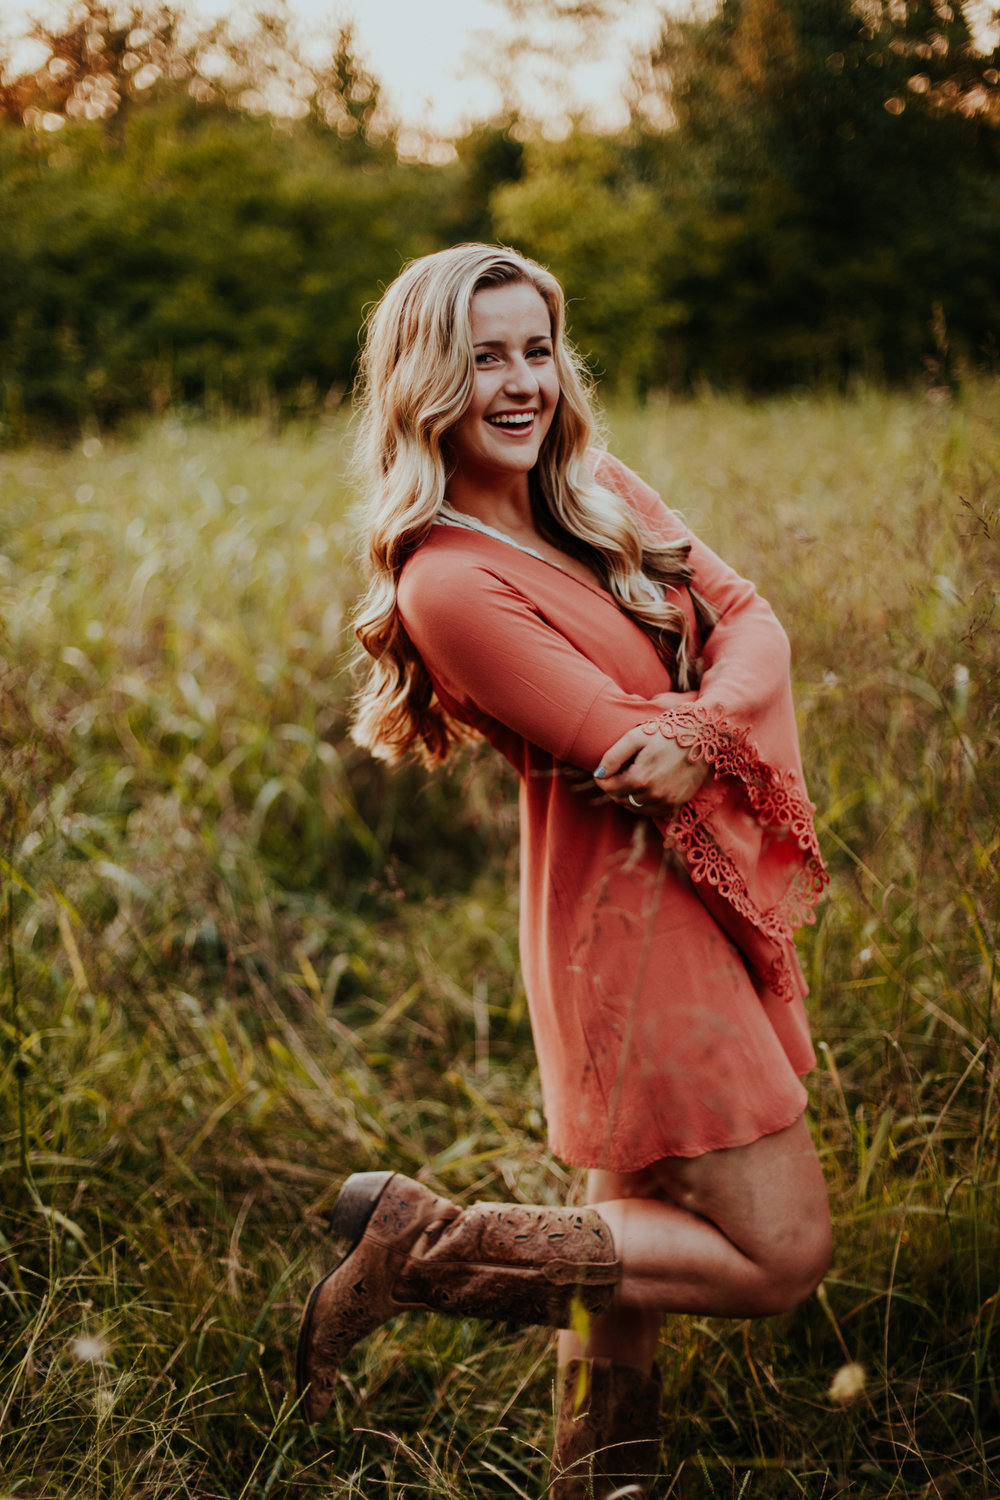 best senior portrait photographer joint best friend photoshoot nashville